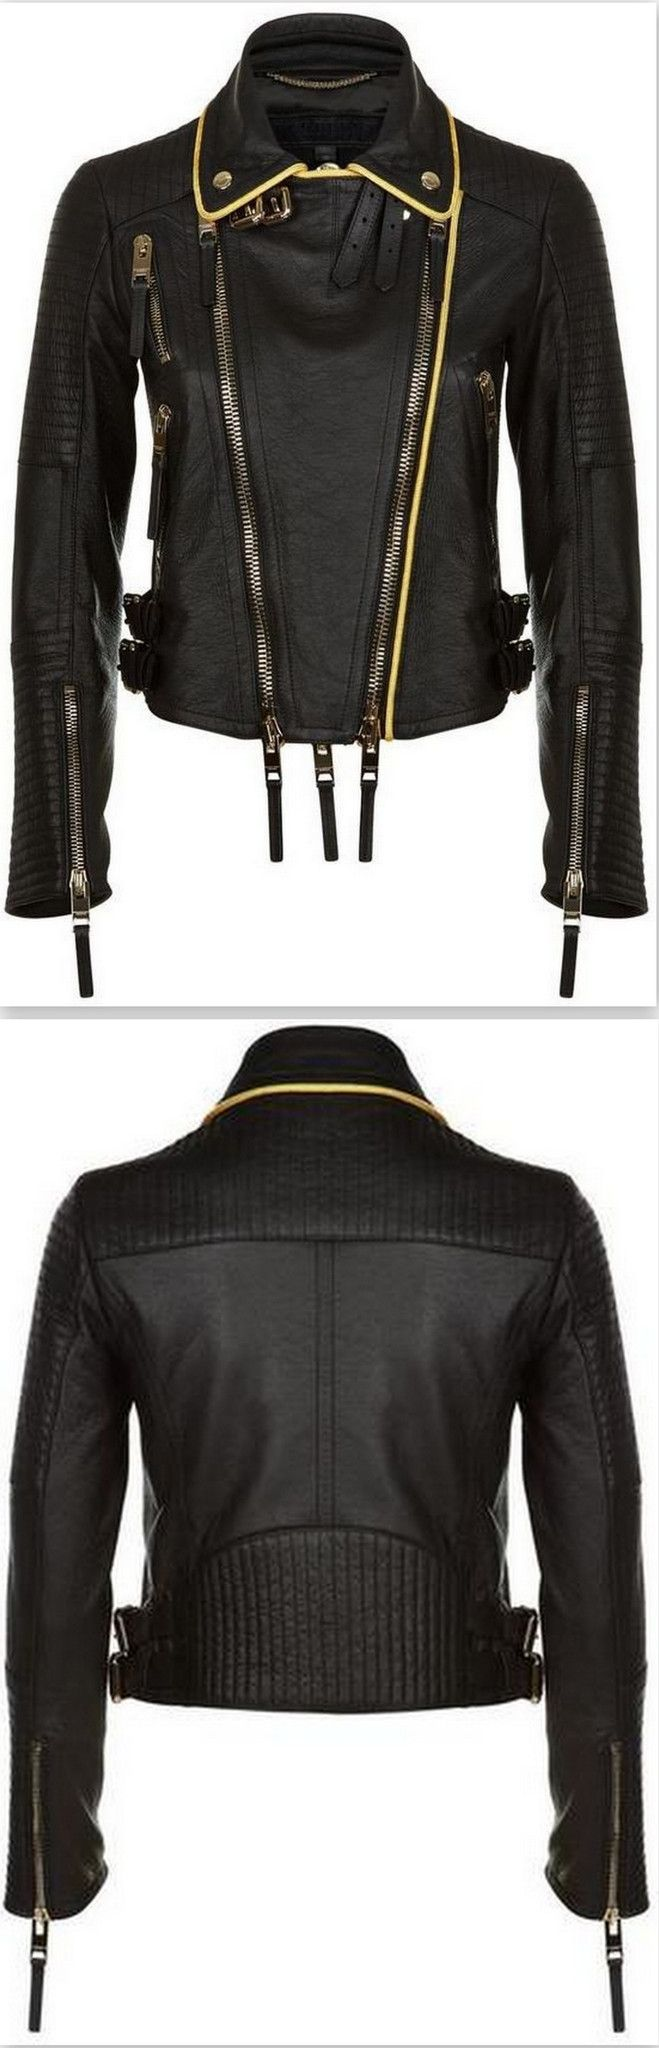 'The Biker' Regimental-Trimmed Genuine Leather Biker Jacket